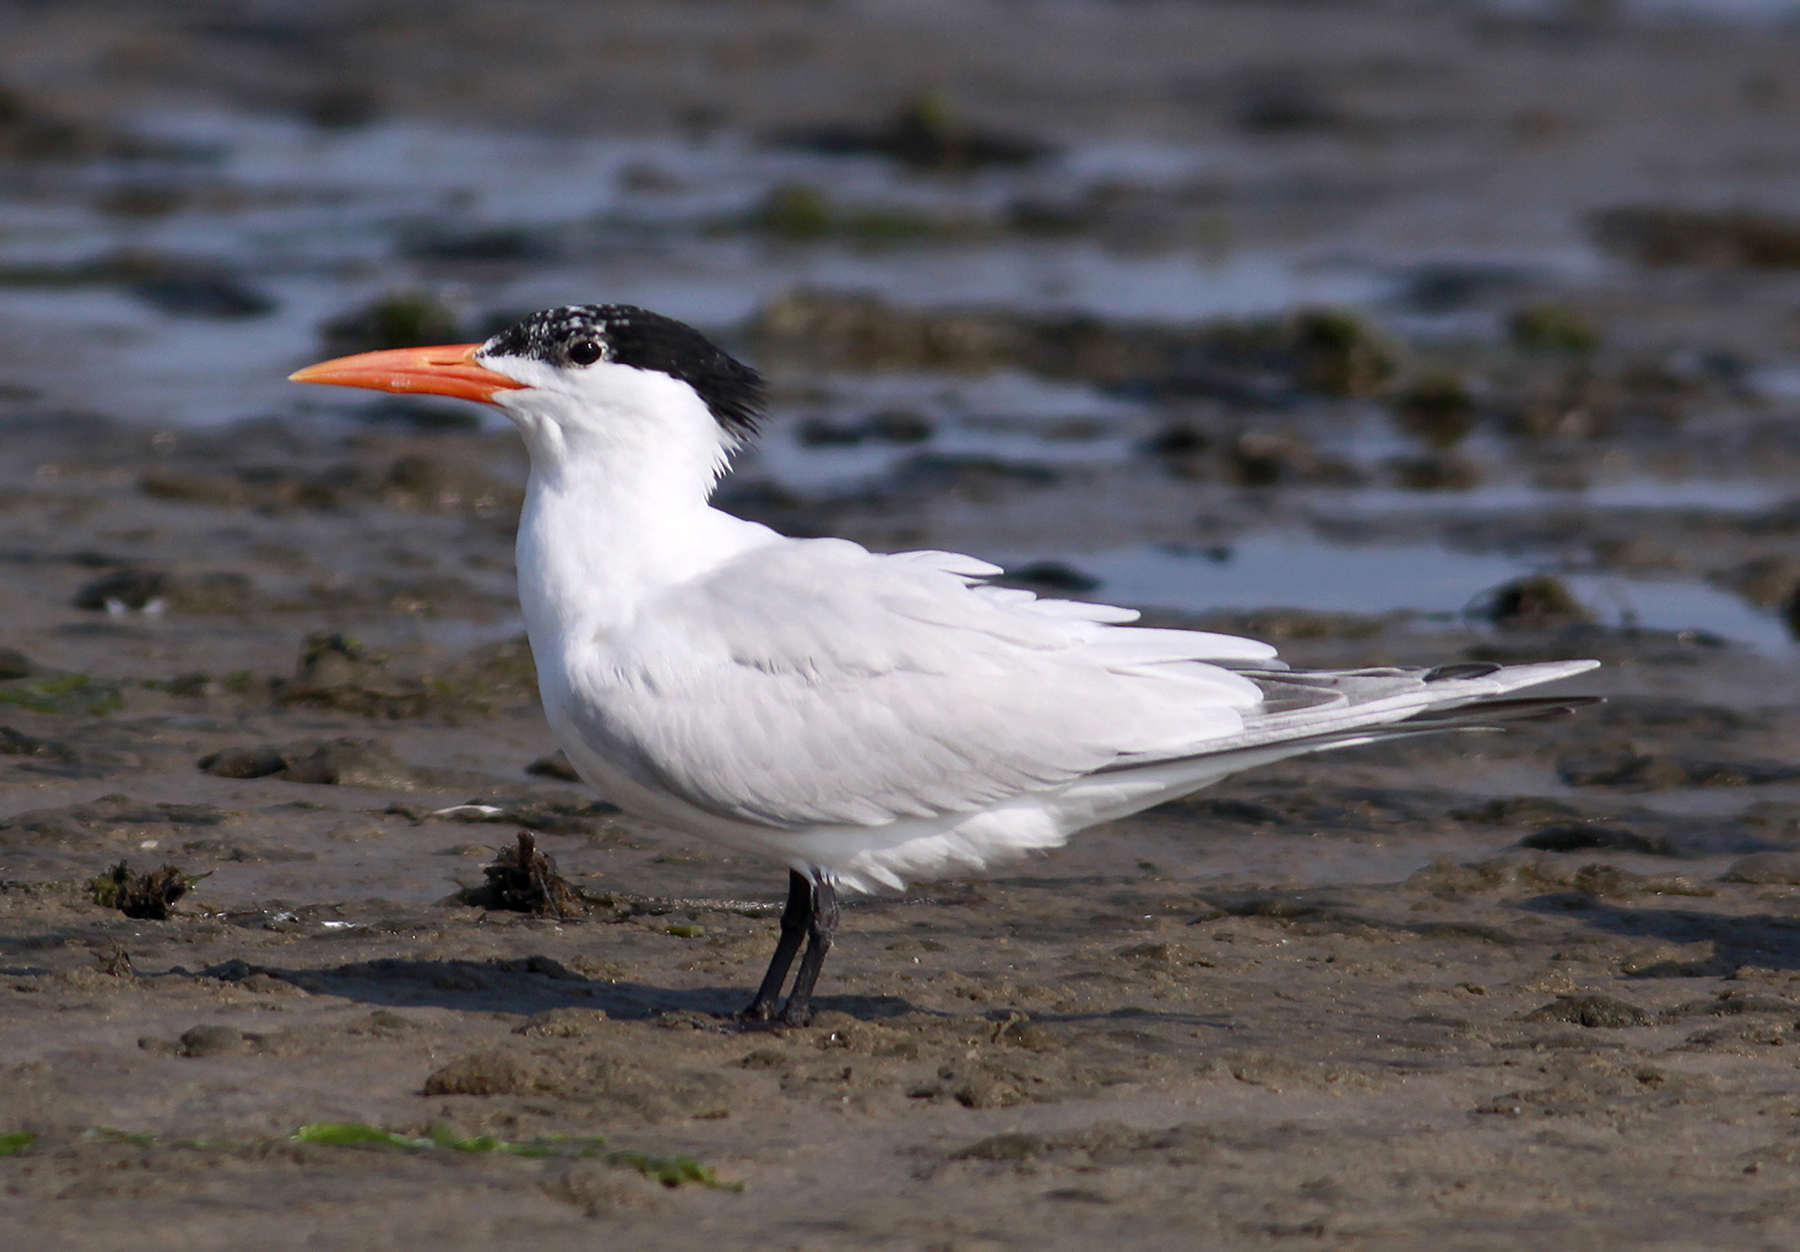 Royal Tern Identification All About Birds Cornell Lab of